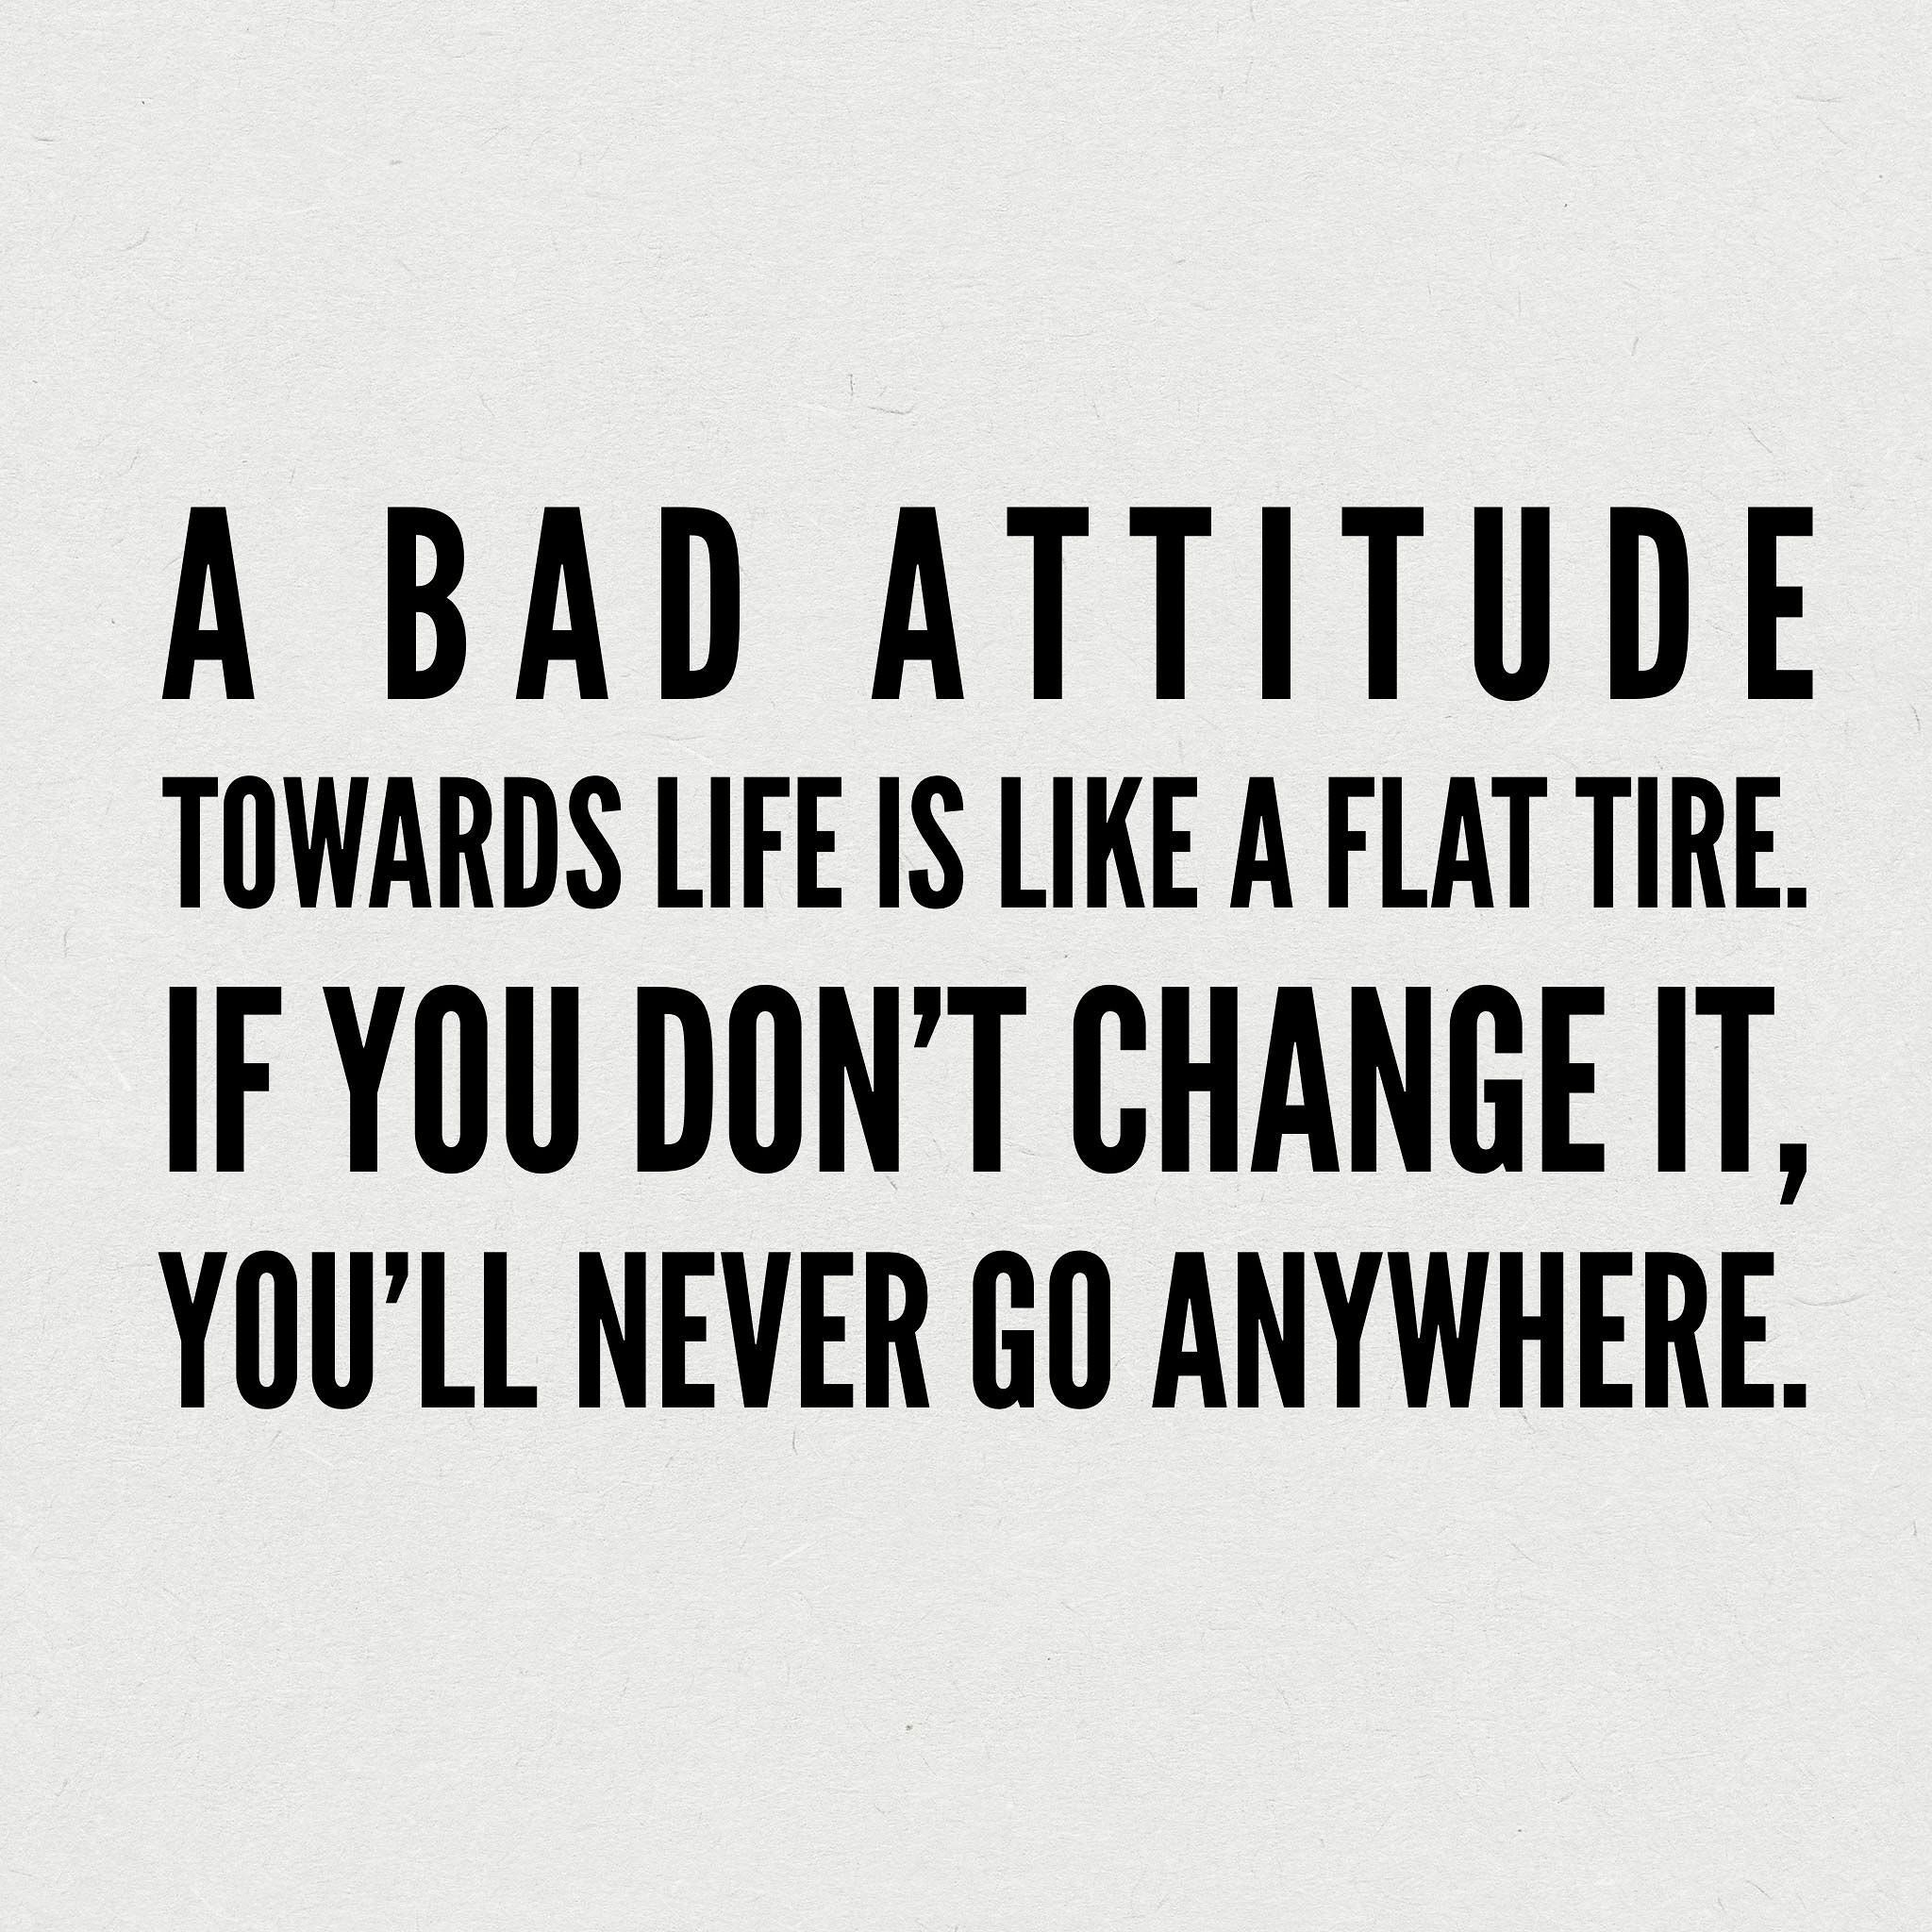 Bad Attitude Quotes A Bad Attitude Towards Life Is Like A Flat Tireif You Don't